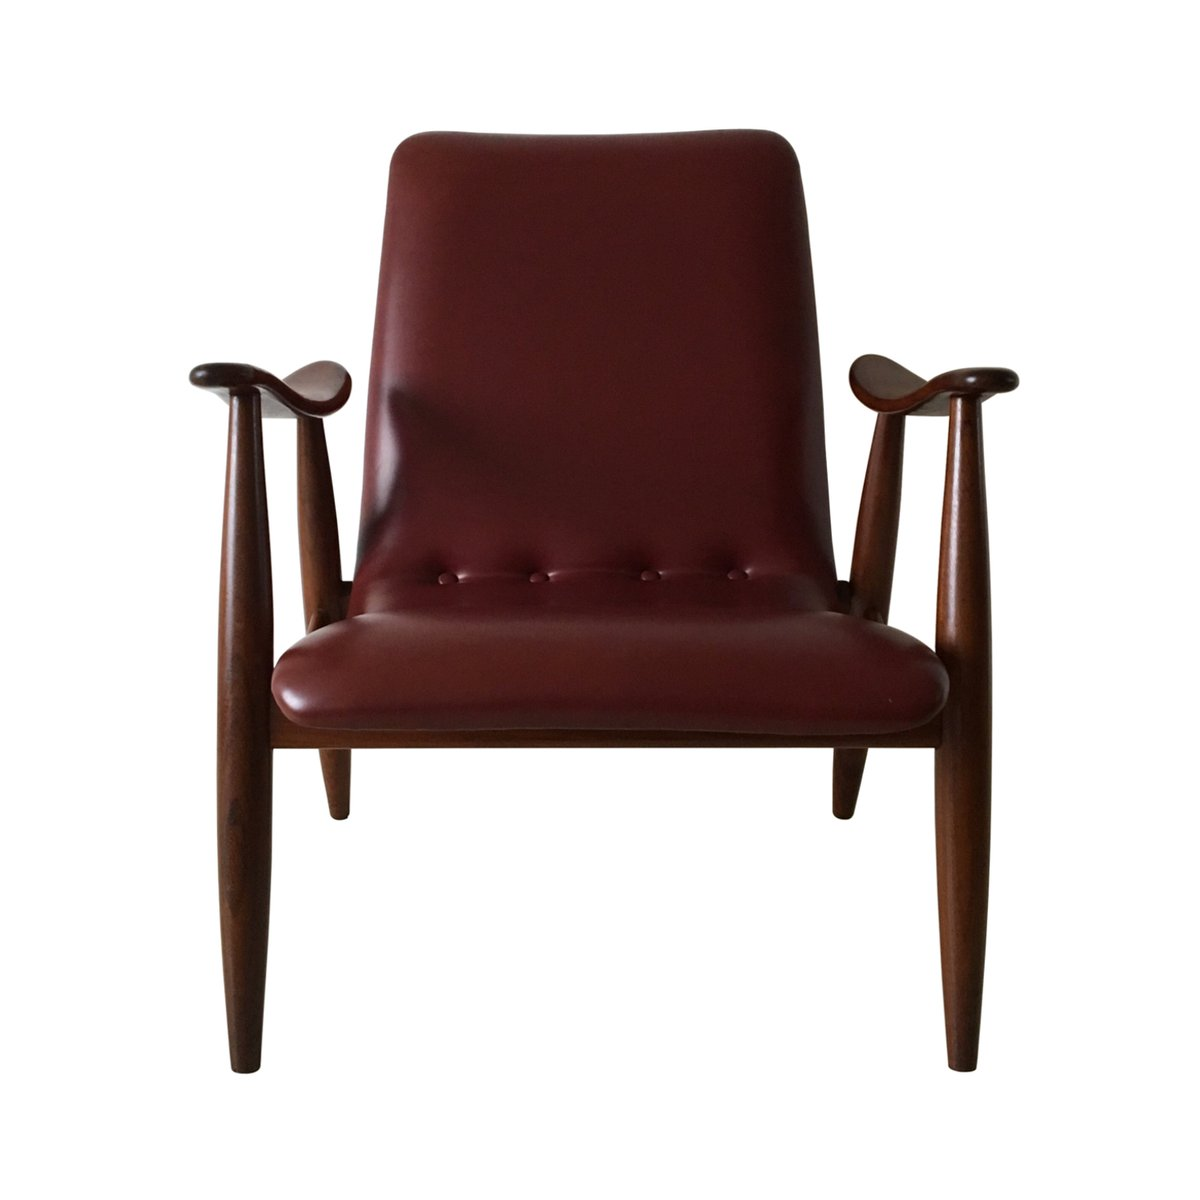 Vintage Lounge Chair by Louis van Teeffelen for Wb for